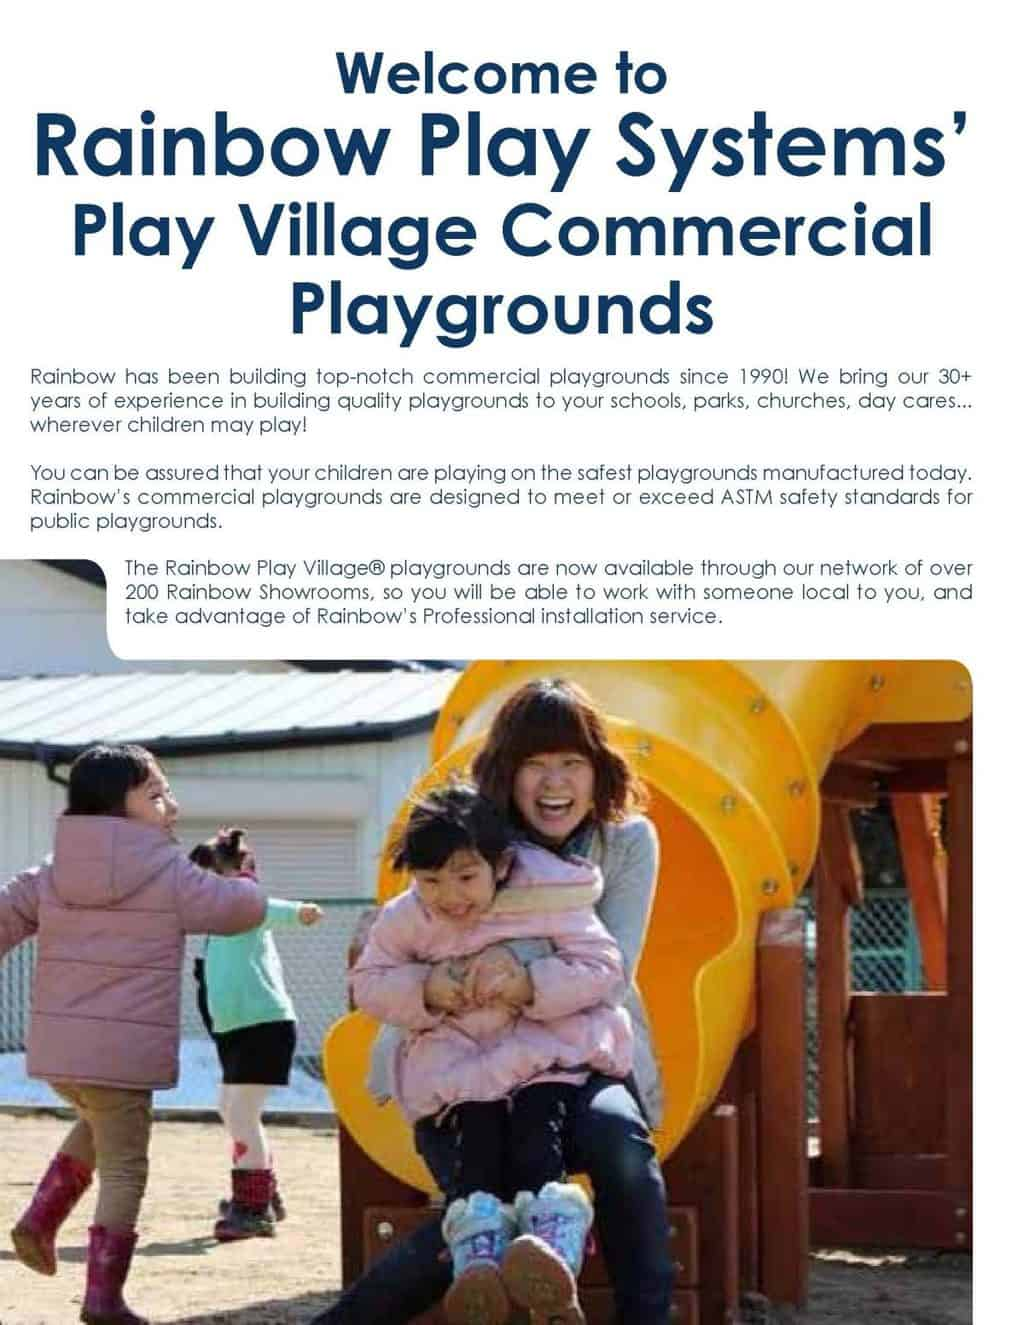 Rainbow Play Village Design 703 (39)